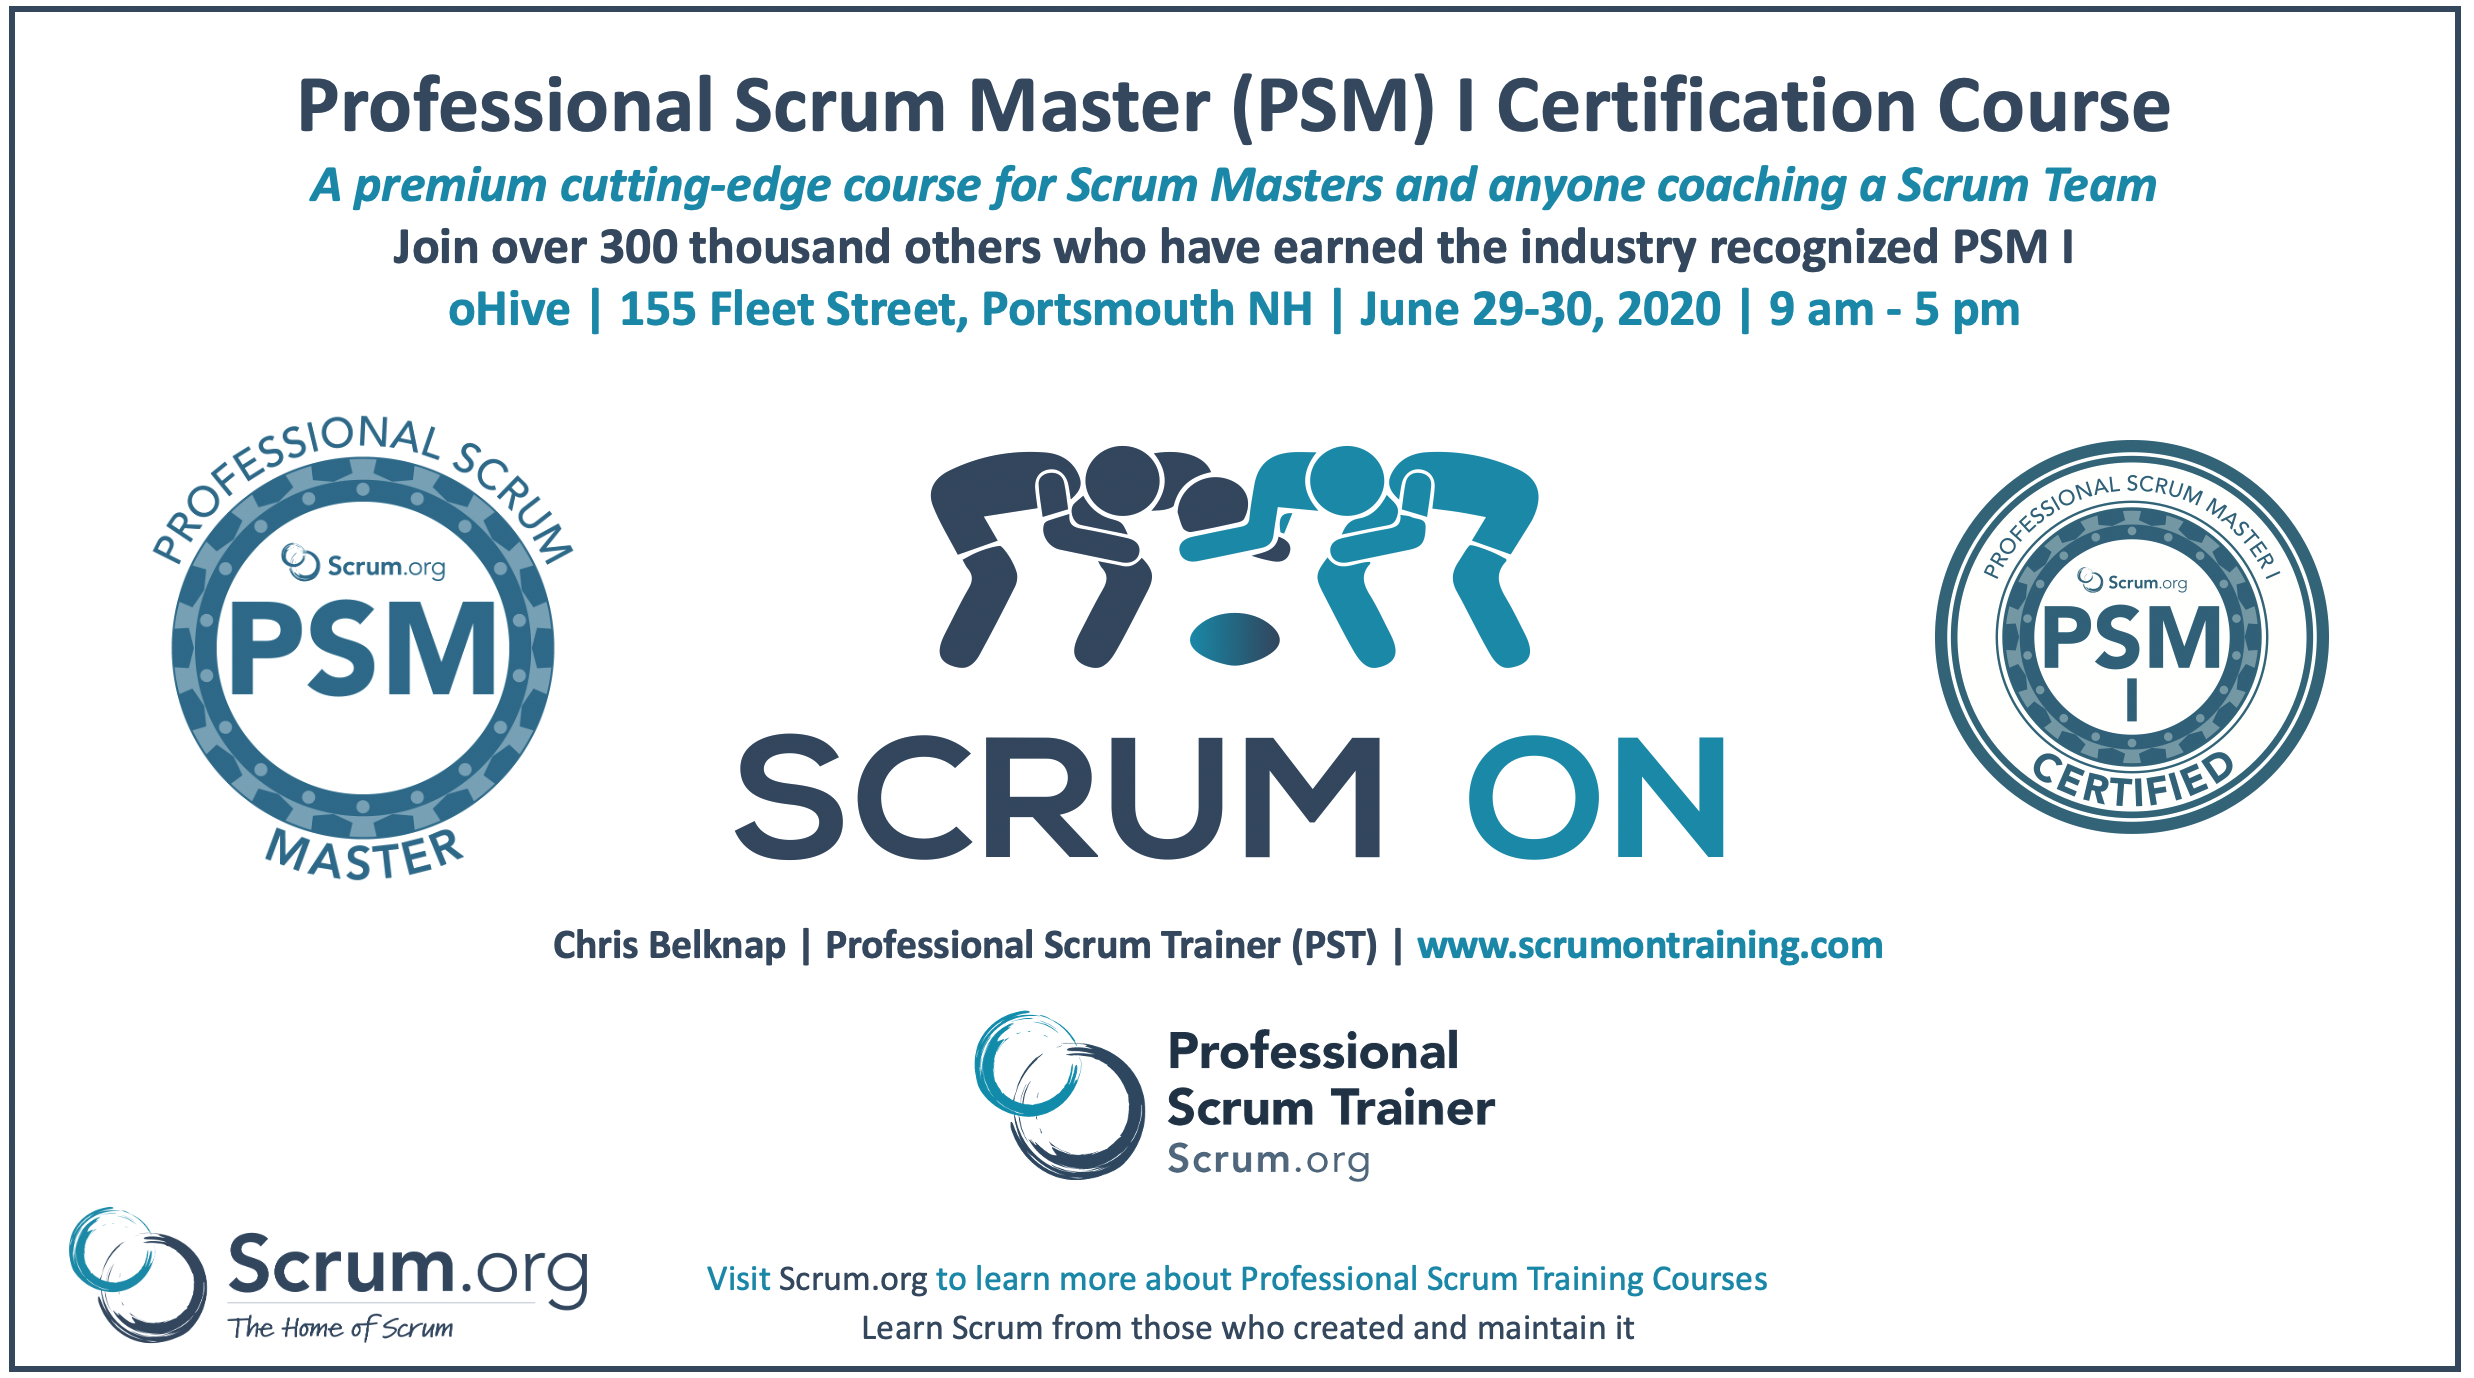 Professional Scrum Master PSM I Portsmouth NH